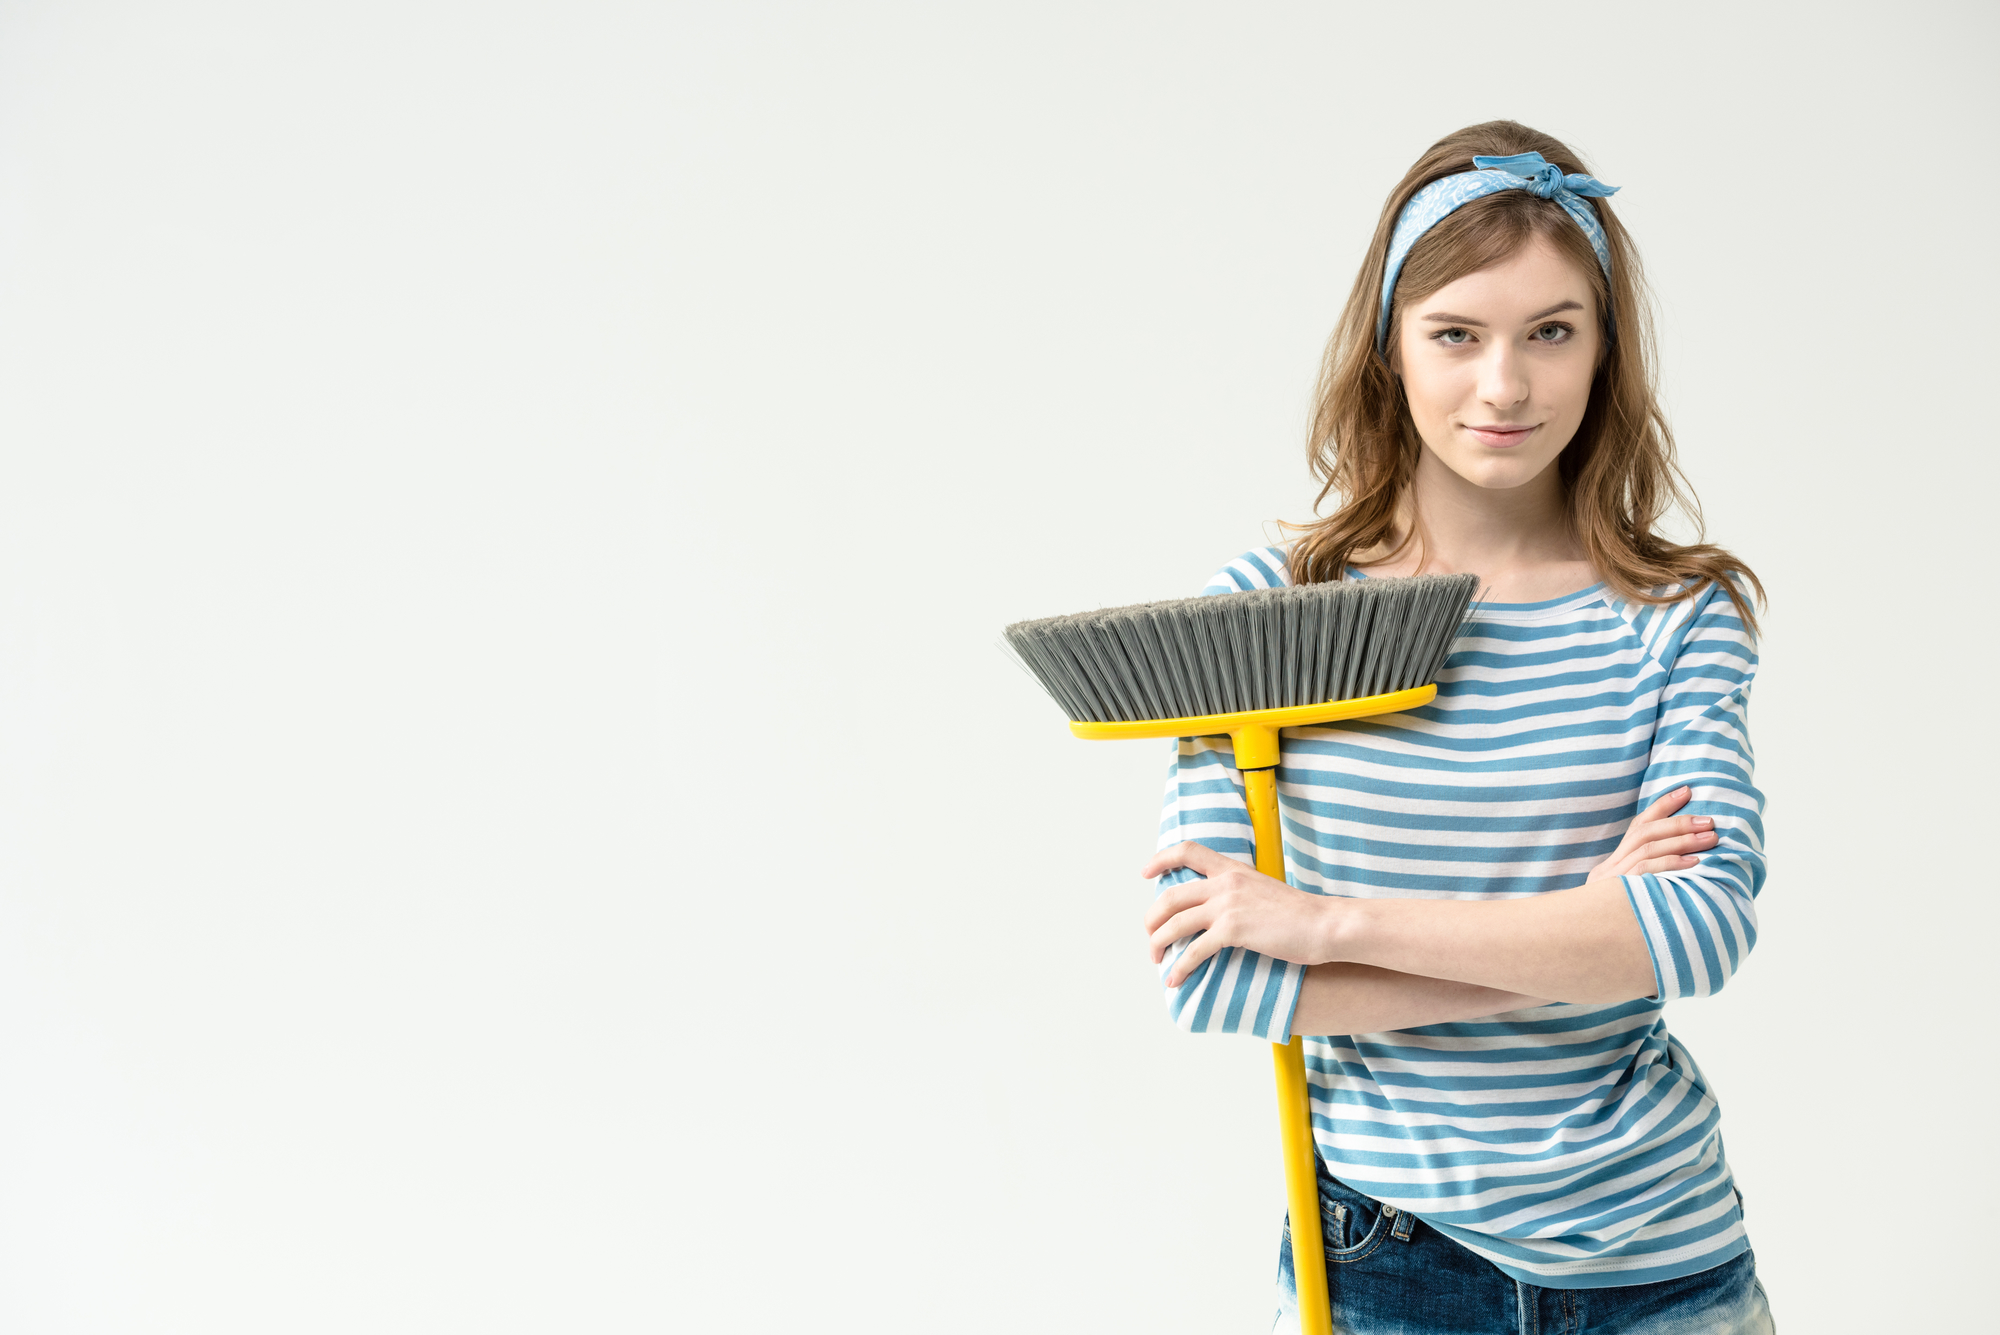 Working Smart As A Homemaker with A Better To-Do List